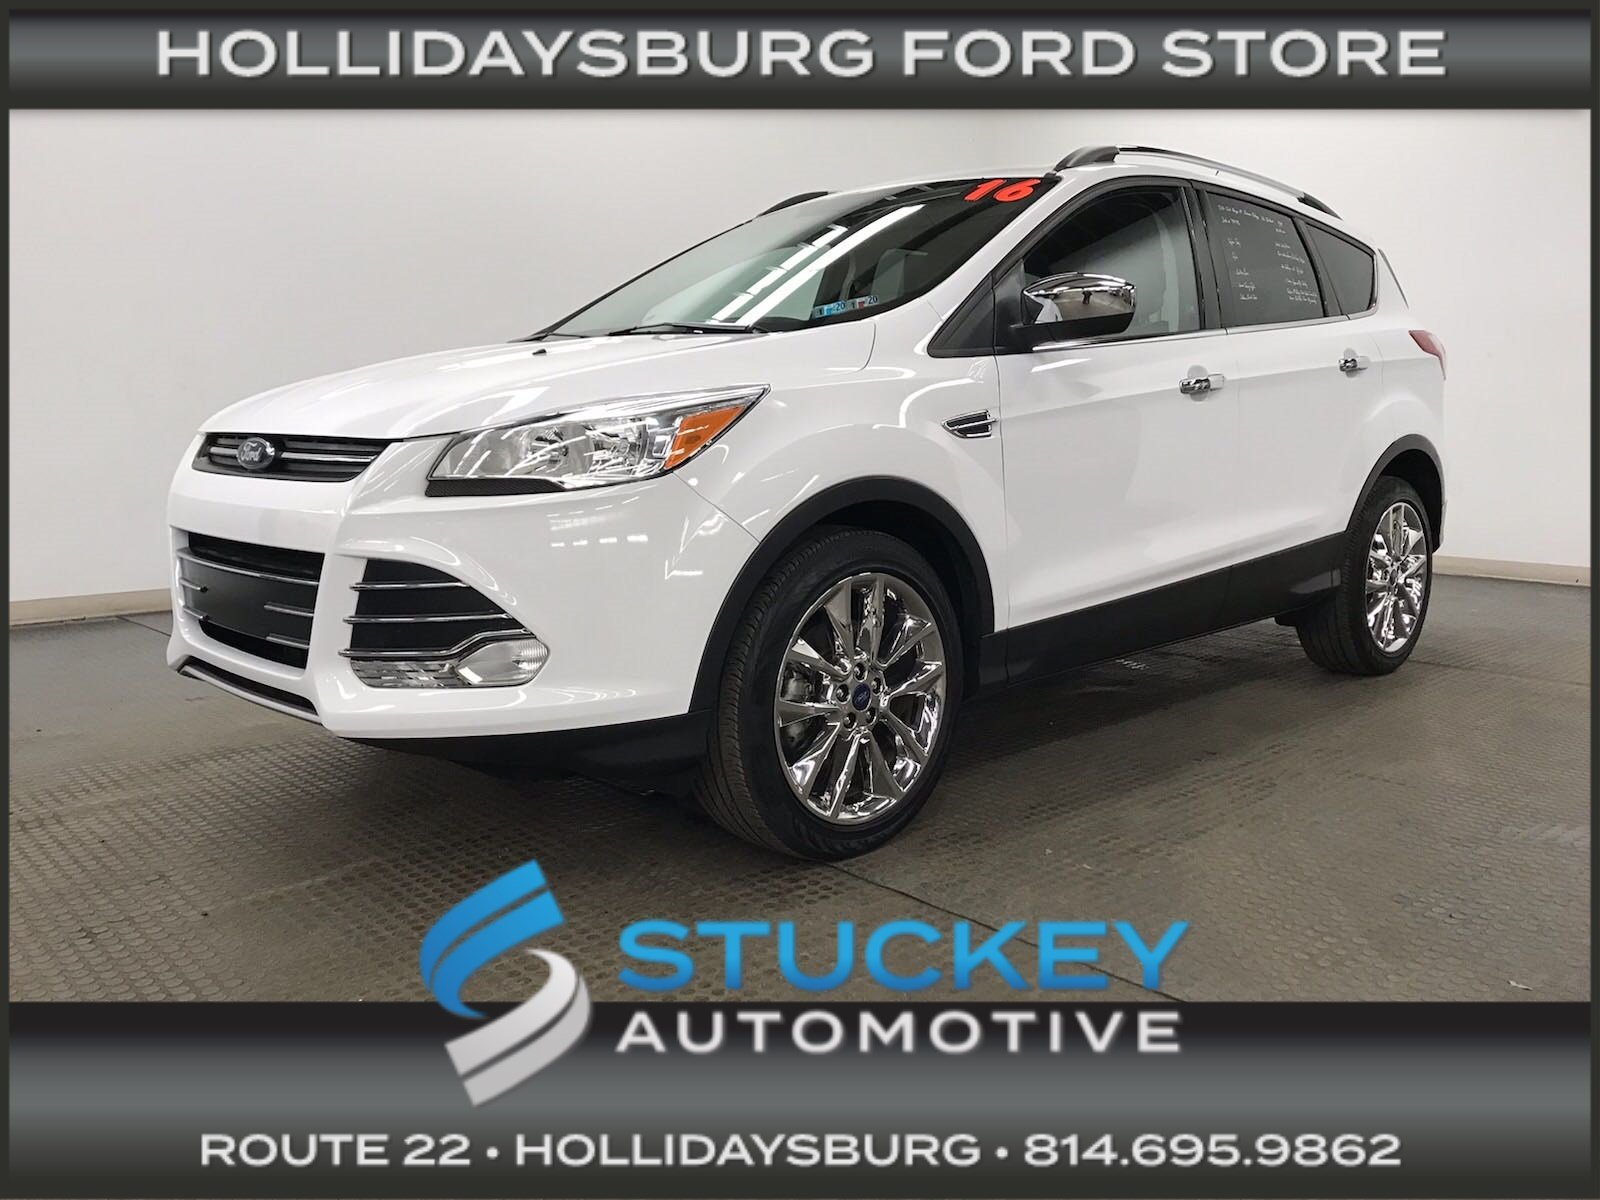 2016 Ford Escape SE Chrome Package 1.6L EcoBoost 4WD SUV